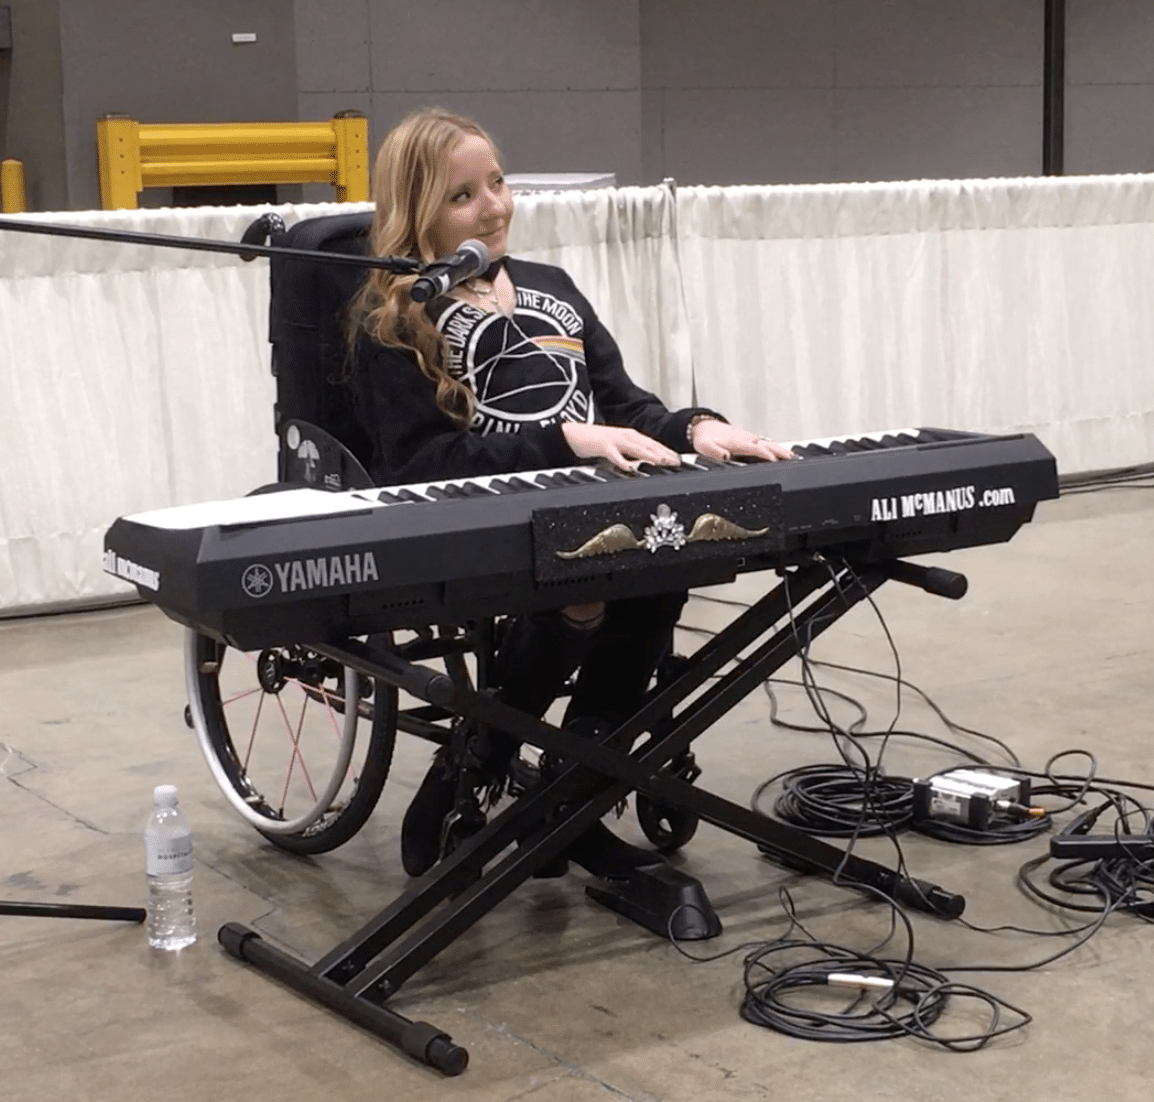 McManus performing at Abilities Expo LA